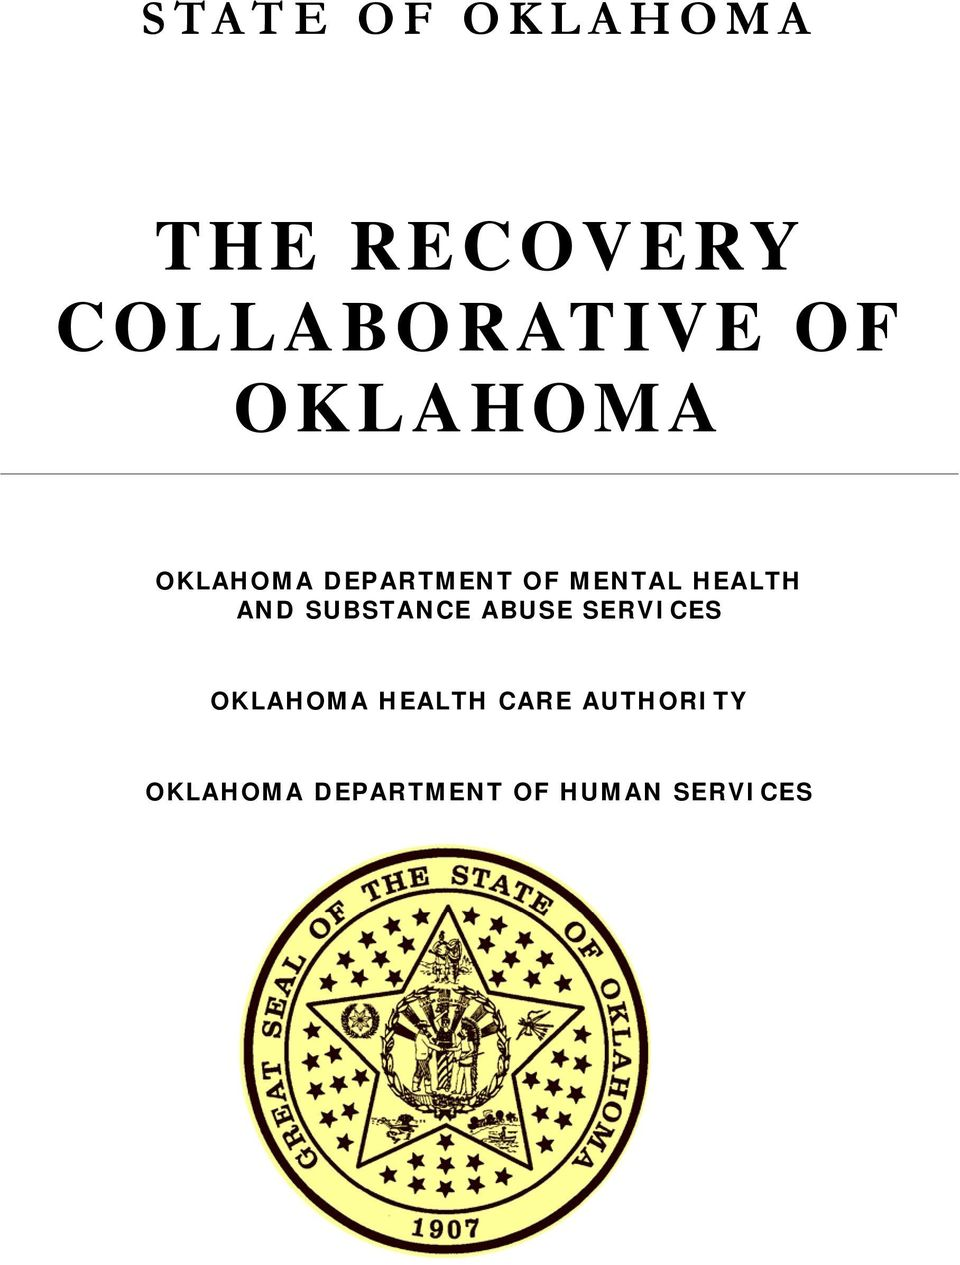 AND SUBSTANCE ABUSE SERVICES OKLAHOMA HEALTH